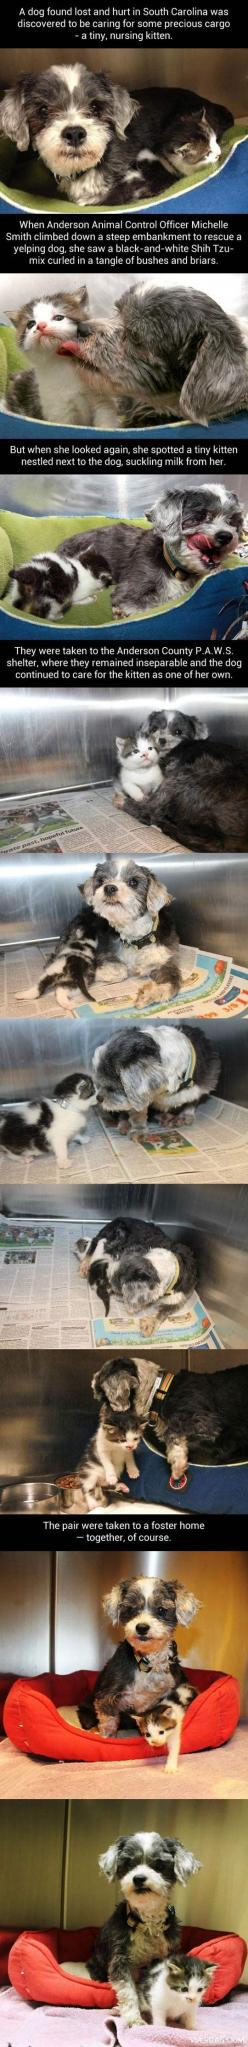 Lost dog finds little kitten and saves her…: Dog Finds, Cat, Dogs, My Heart, Kittens, Shih Tzu, Animal Stories